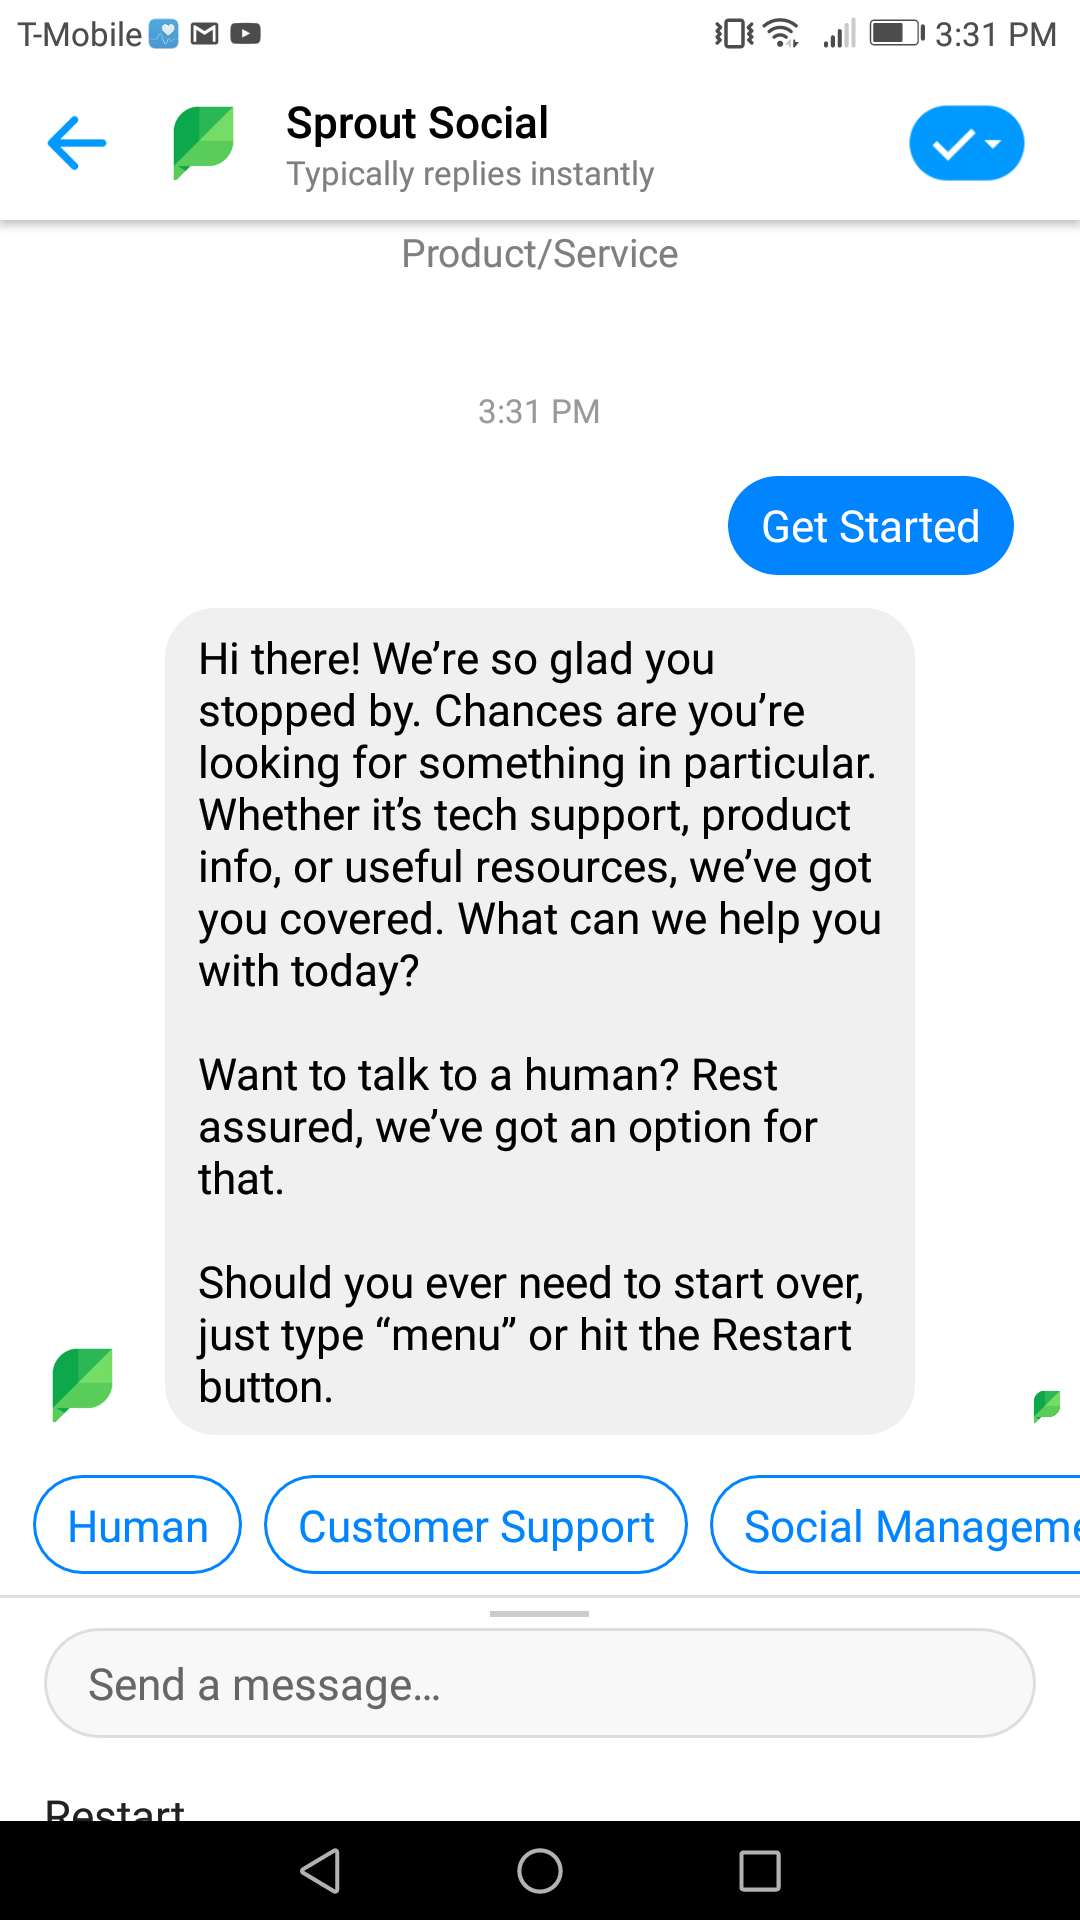 Sprout's bot gives users a warm welcome